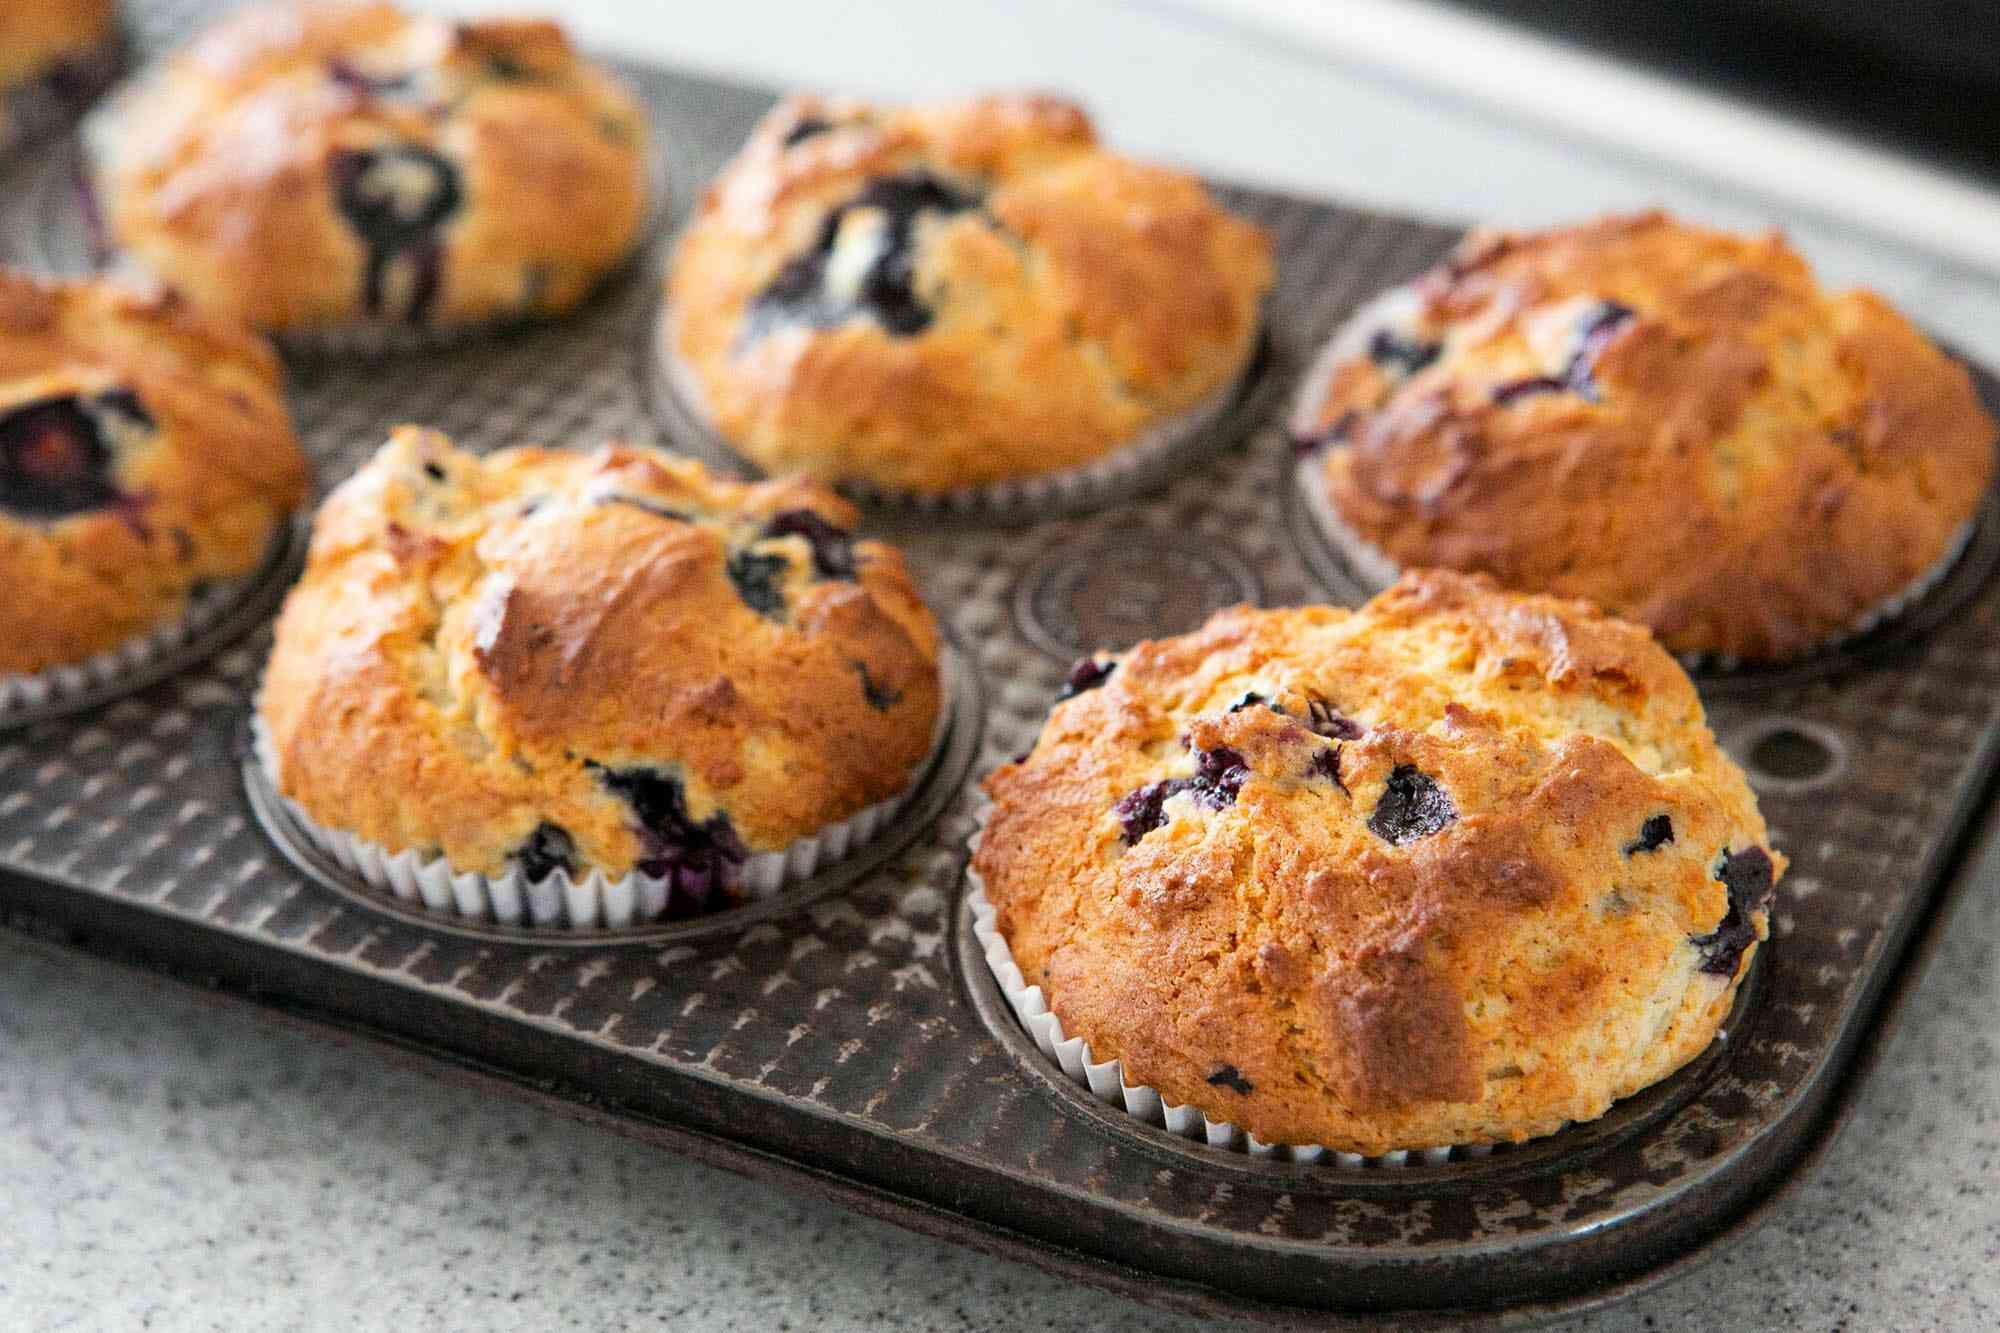 Baked blueberry muffins in the muffin tin after baking